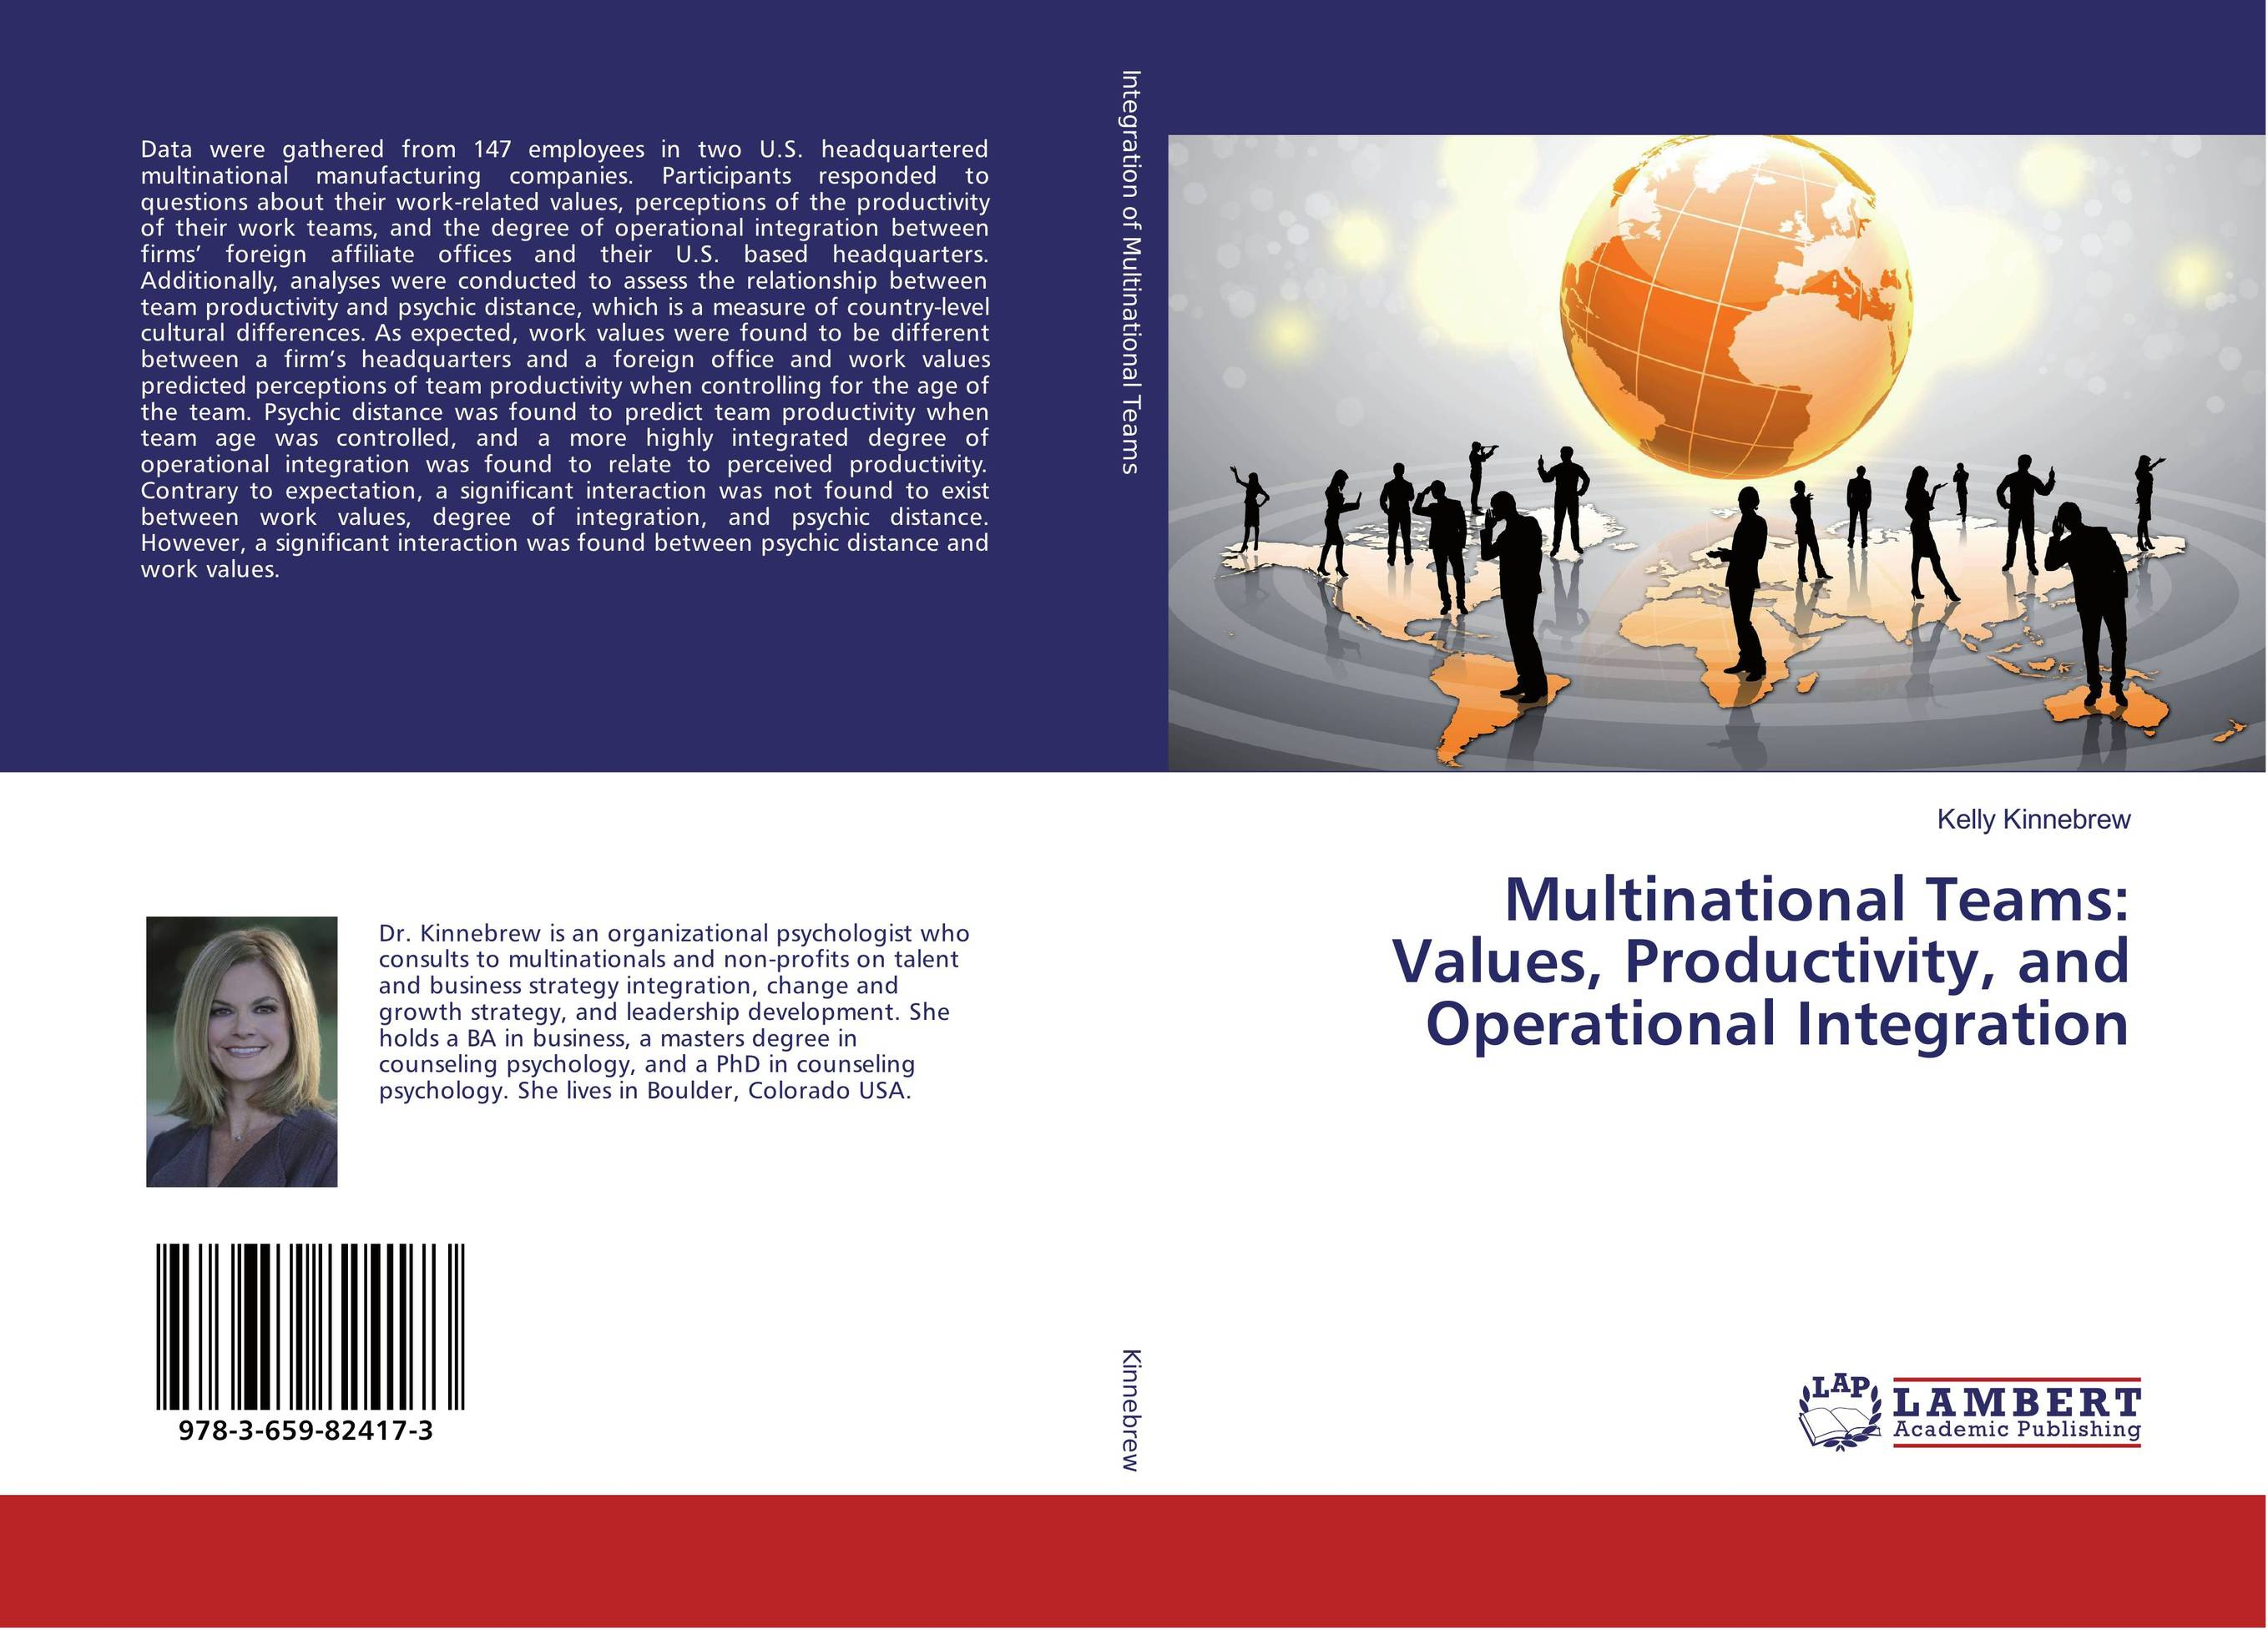 Multinational Teams: Values, Productivity, and Operational Integration